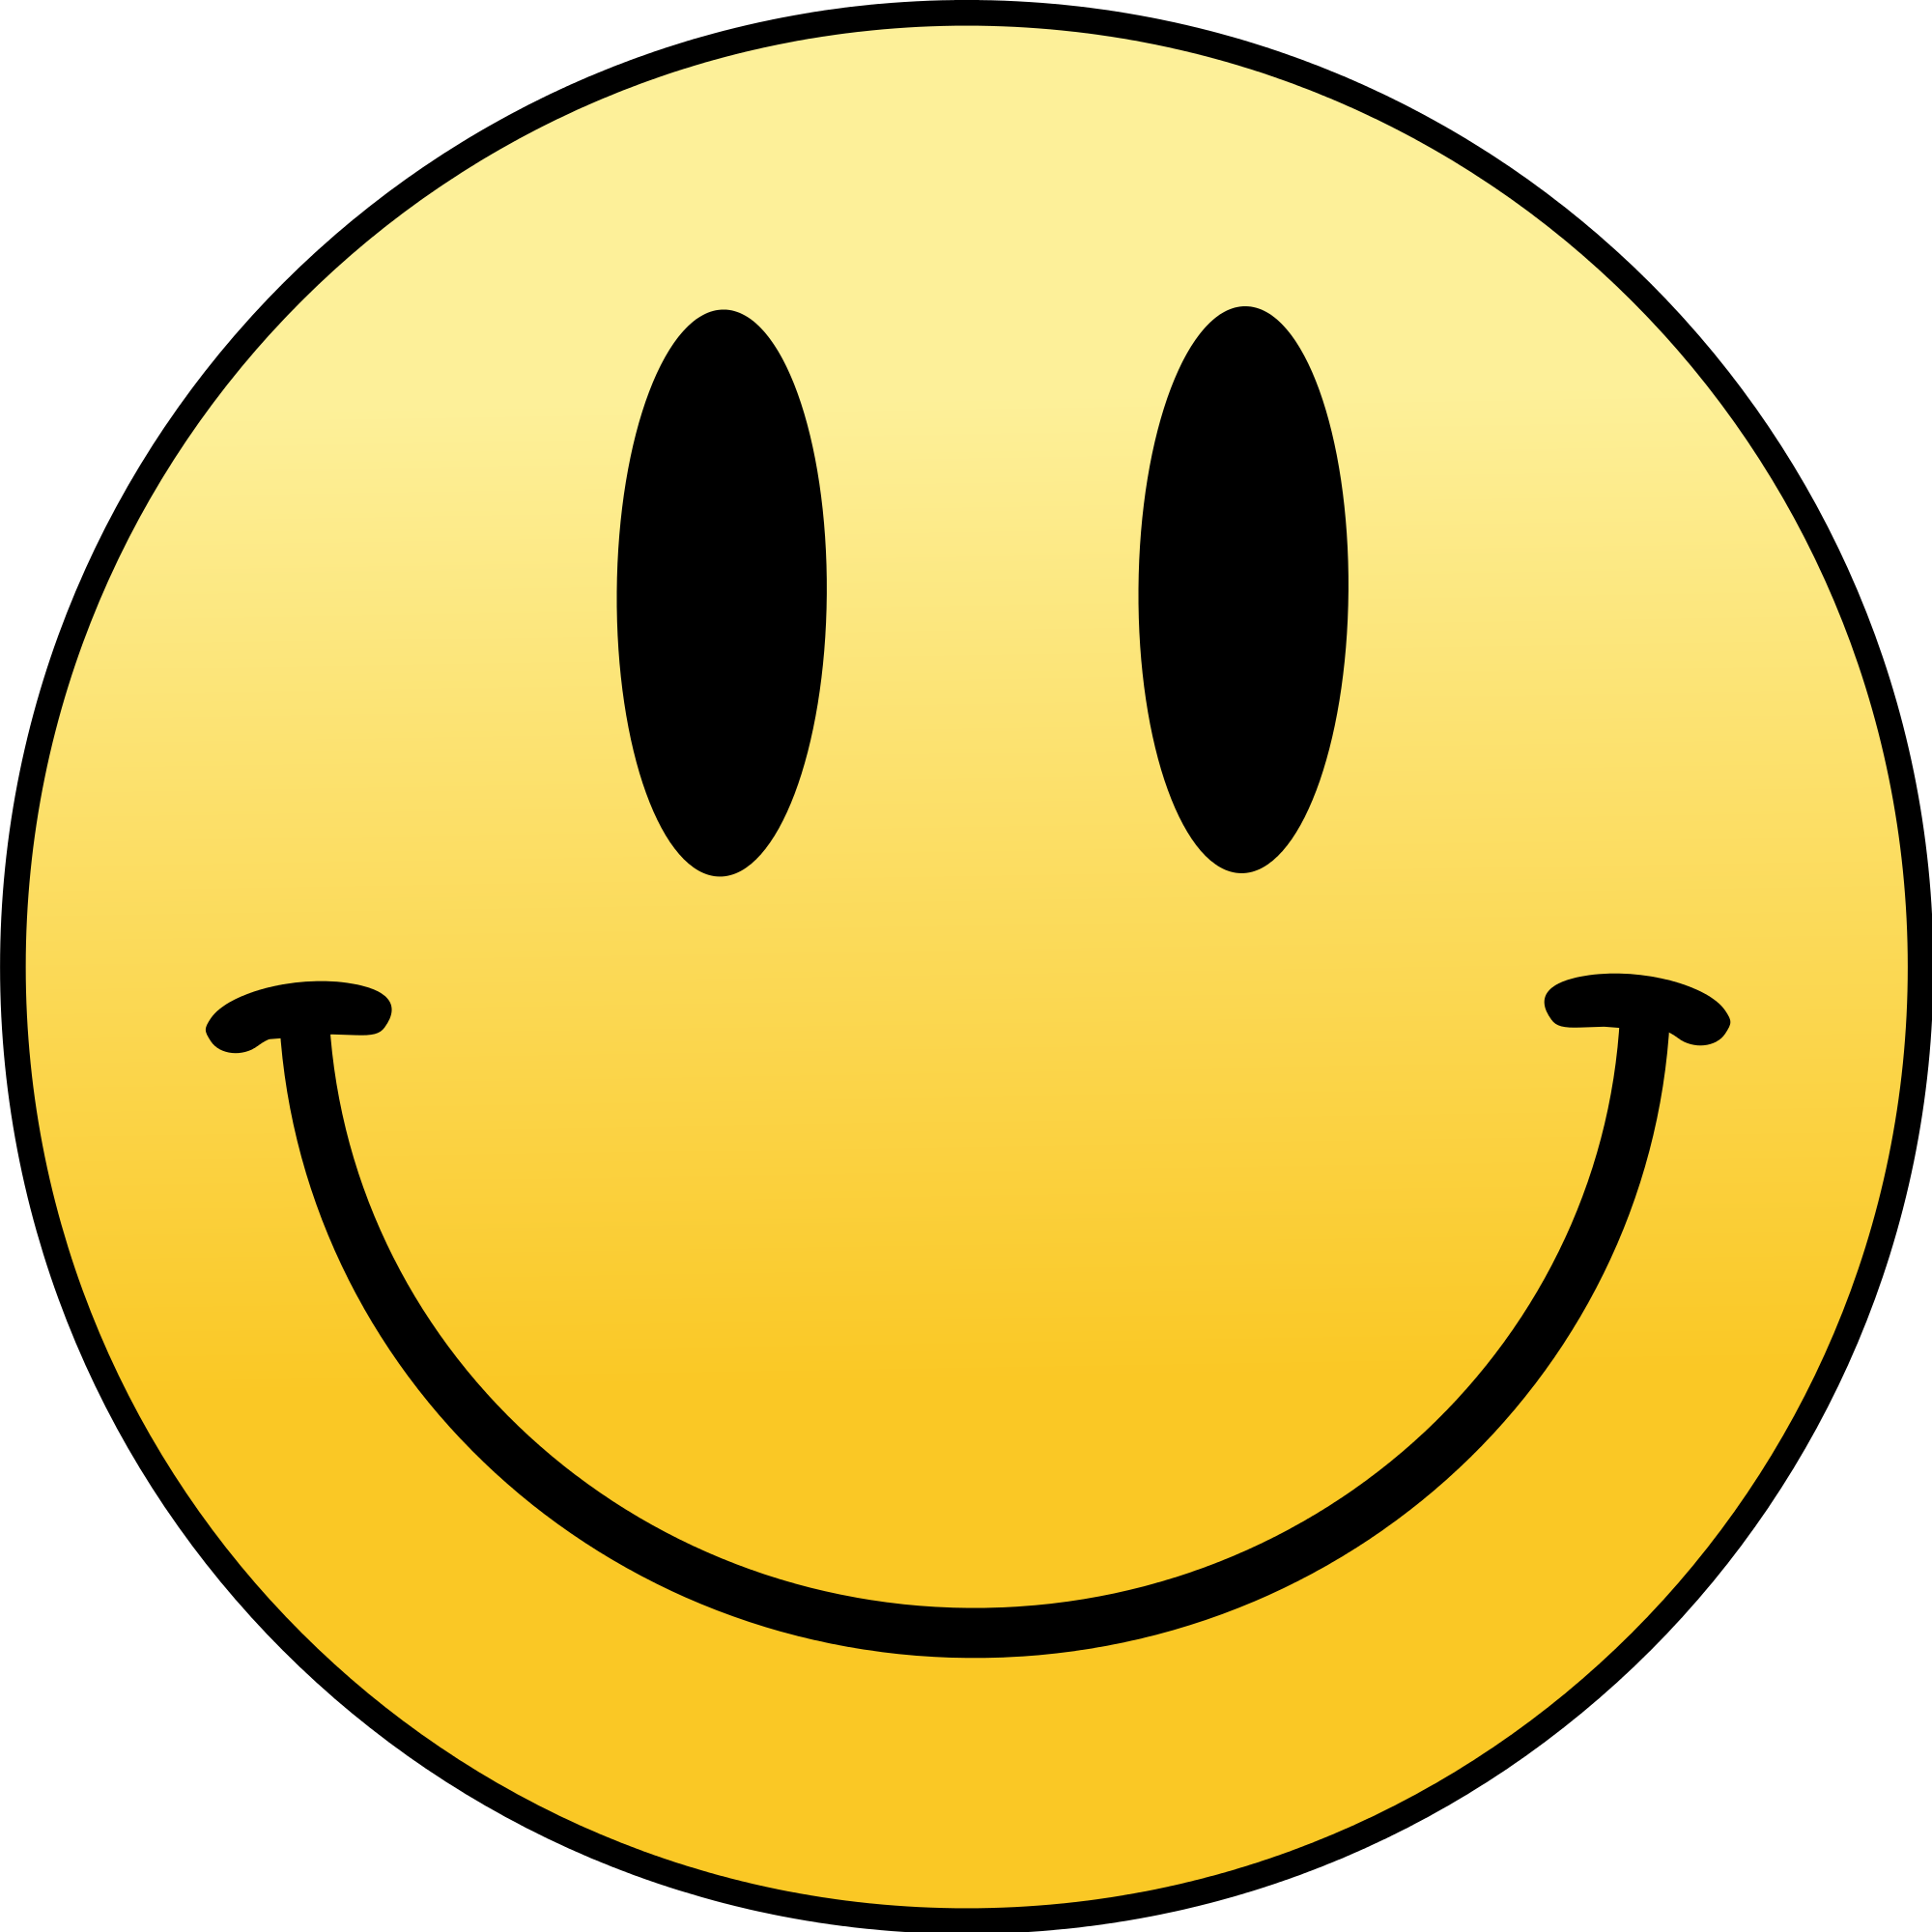 Png hd transparent images. Emotions clipart smily